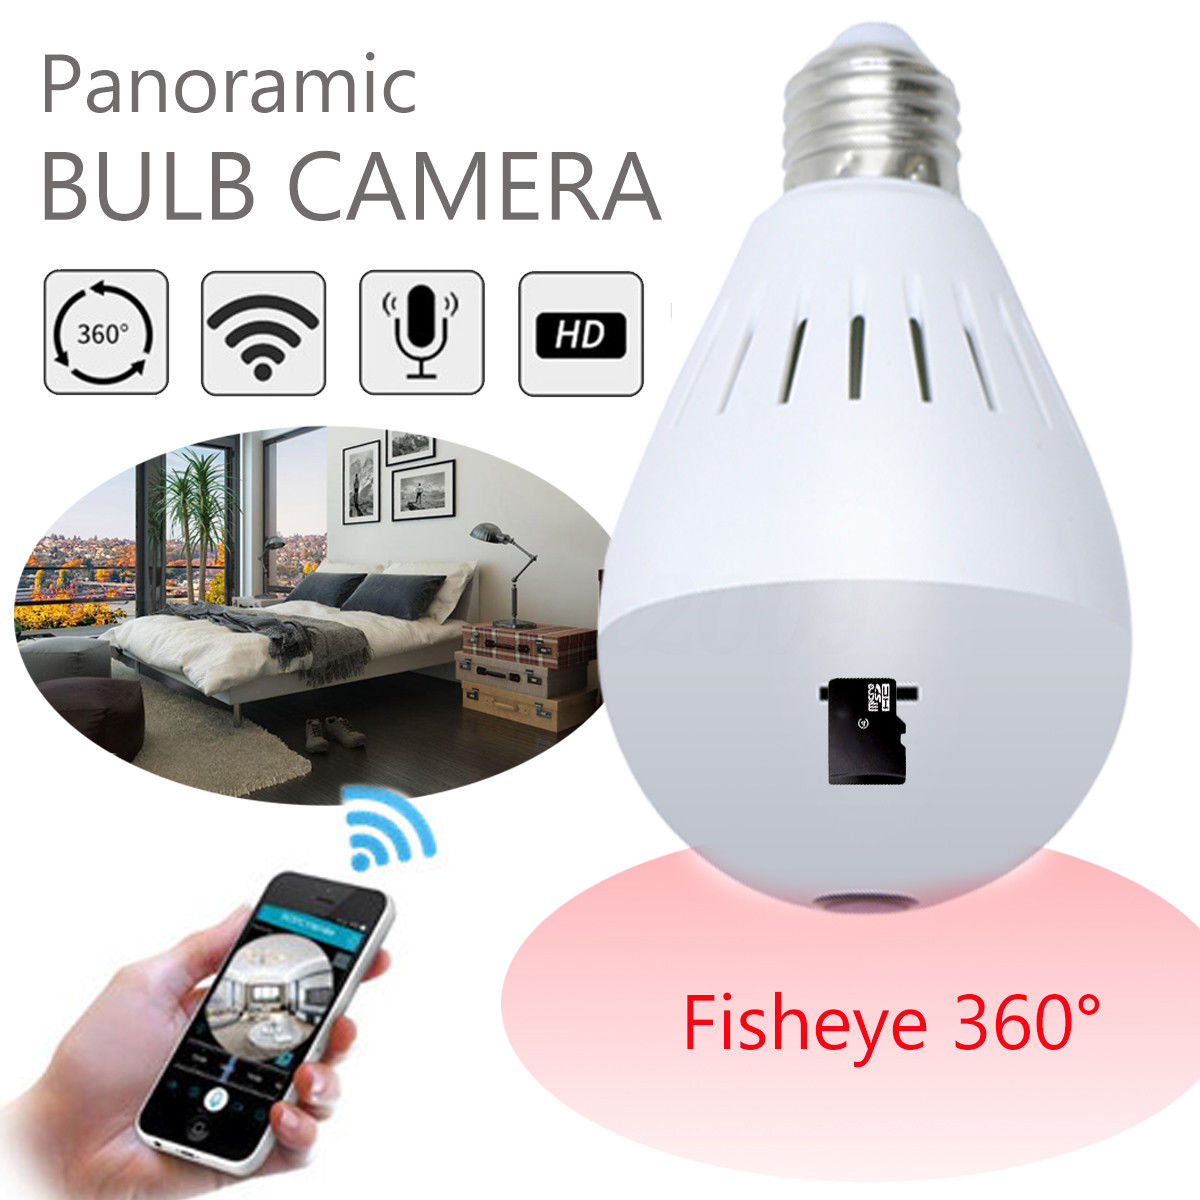 360 Panoramic Camera Network Wireless HD 1080P Camera Monitor CCTV Home Security Fisheye Camera Bulb E27 Night Vision new hd 3mp led bulb light wireless camera fisheye panoramic wifi network ip home security camera system for ios android p2p